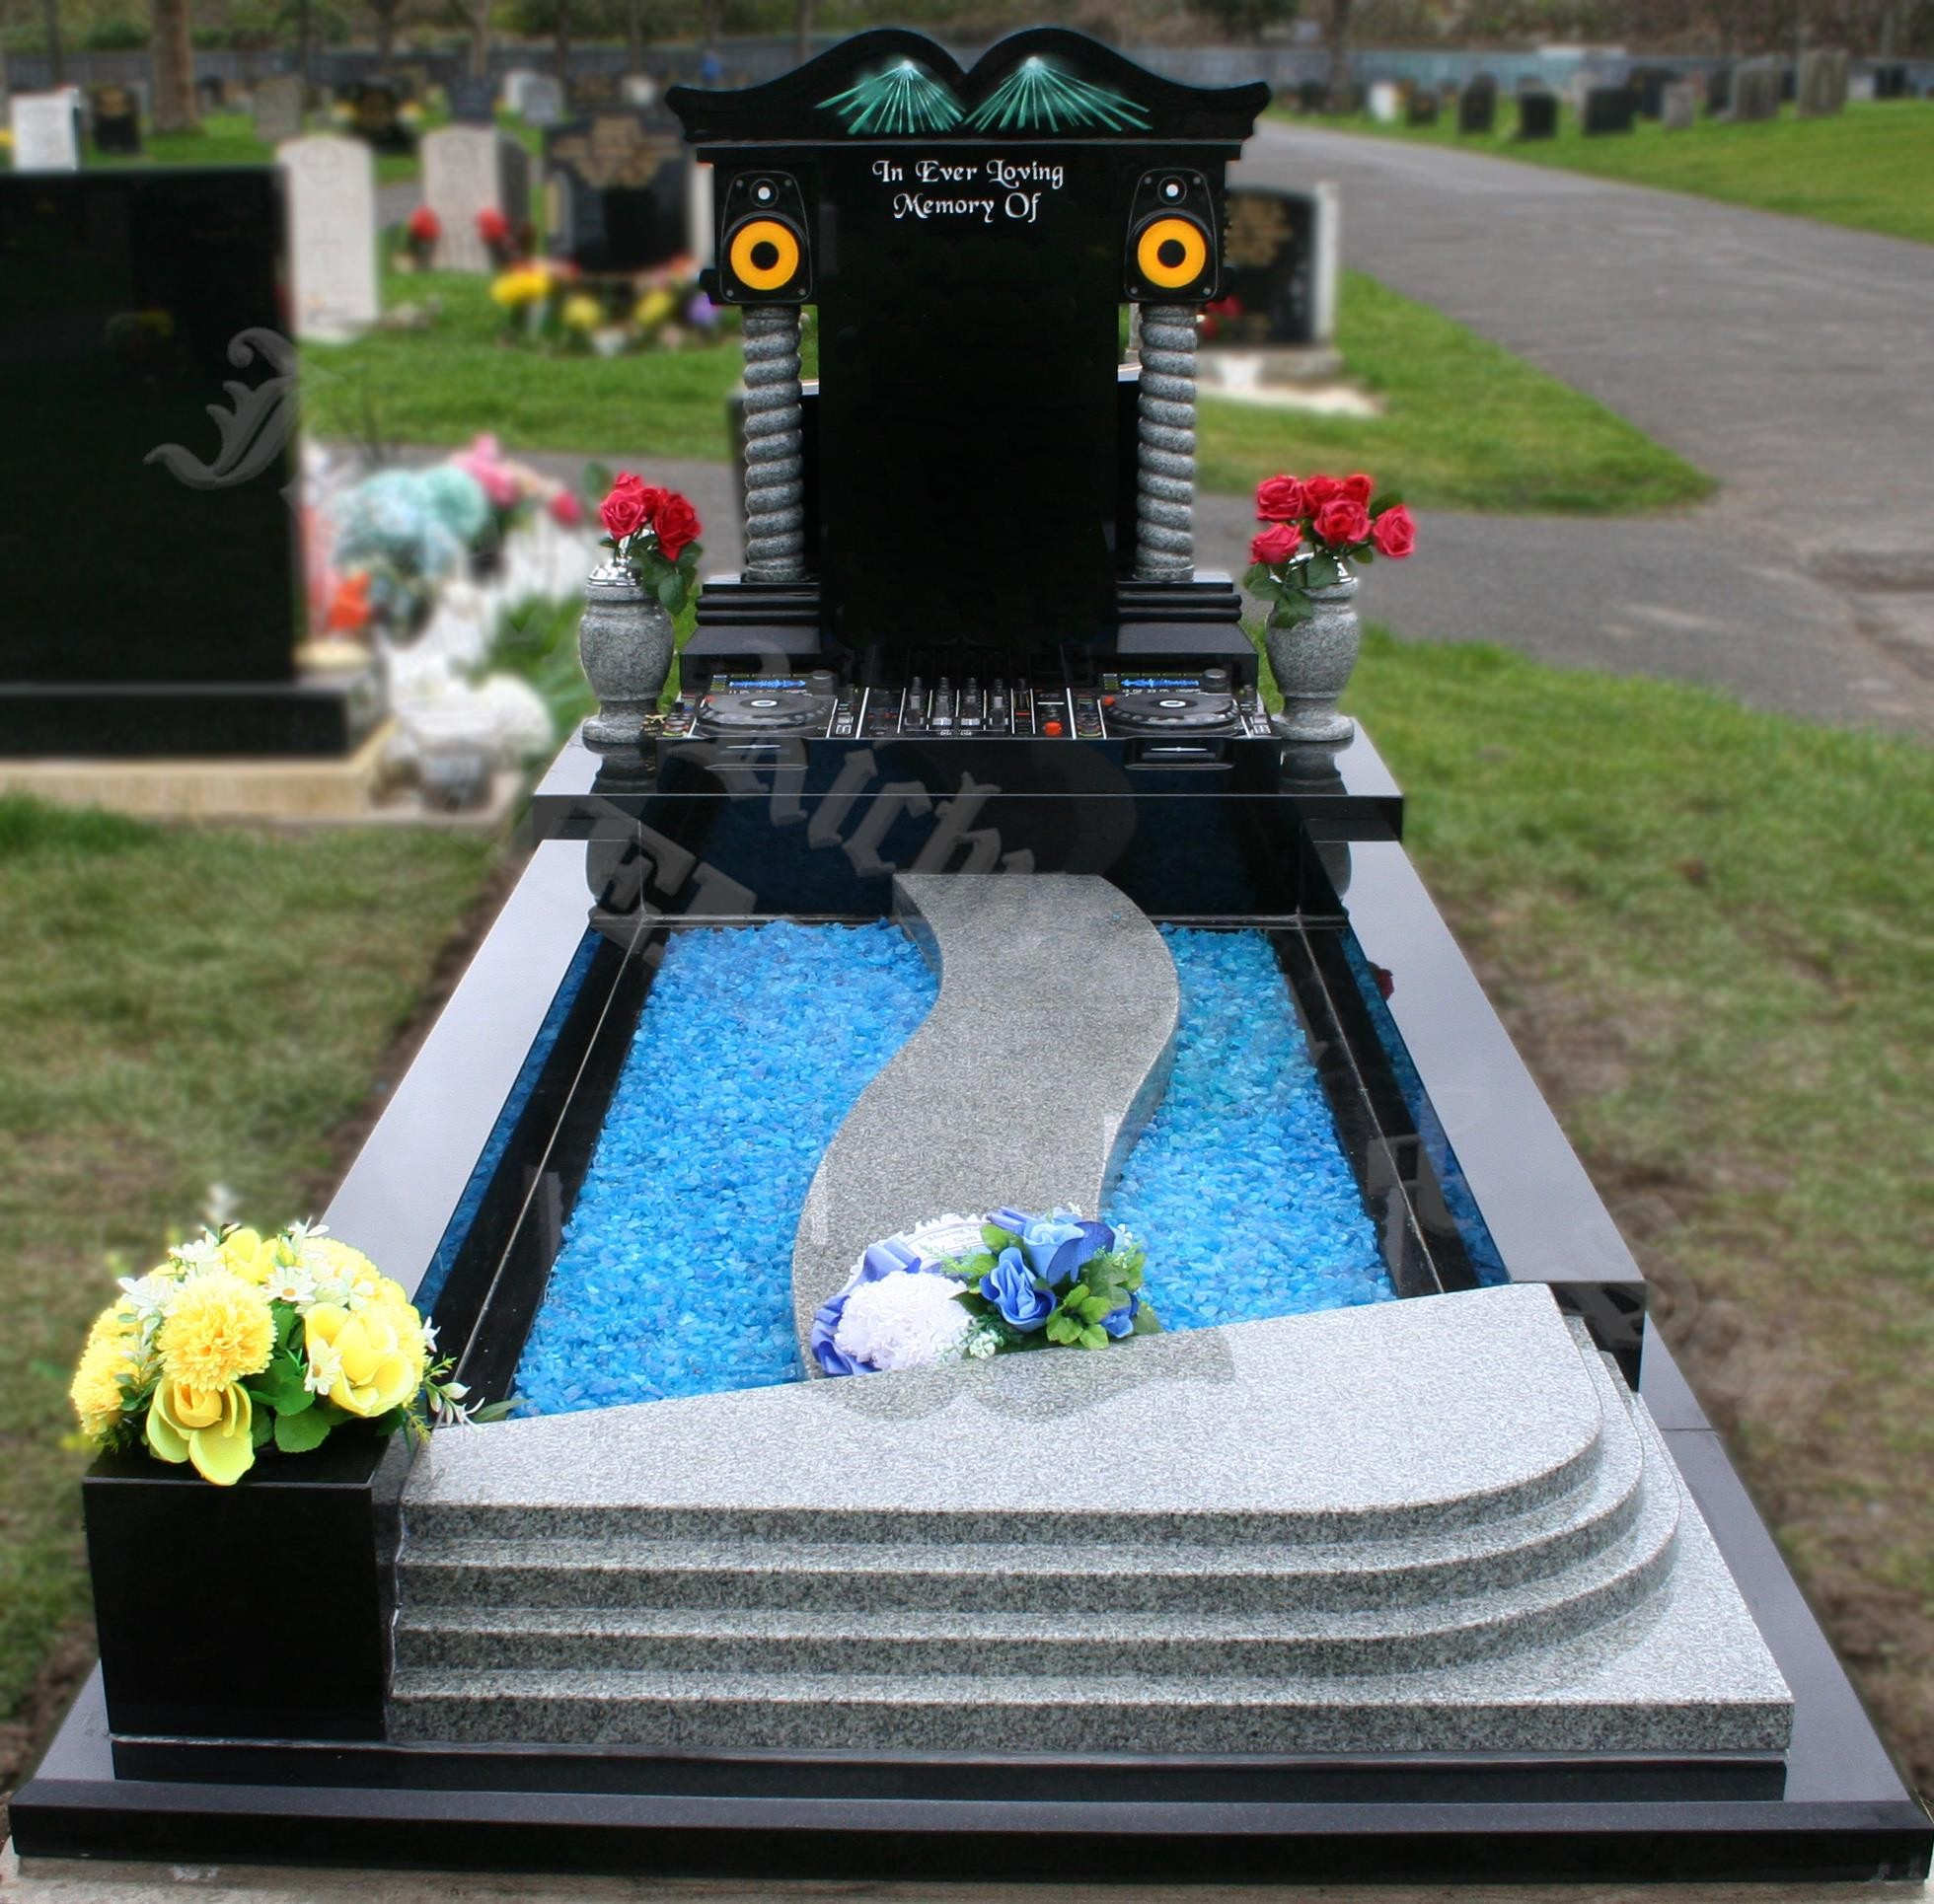 Bespoke joseph richmond son memorials dj memorial reviewsmspy